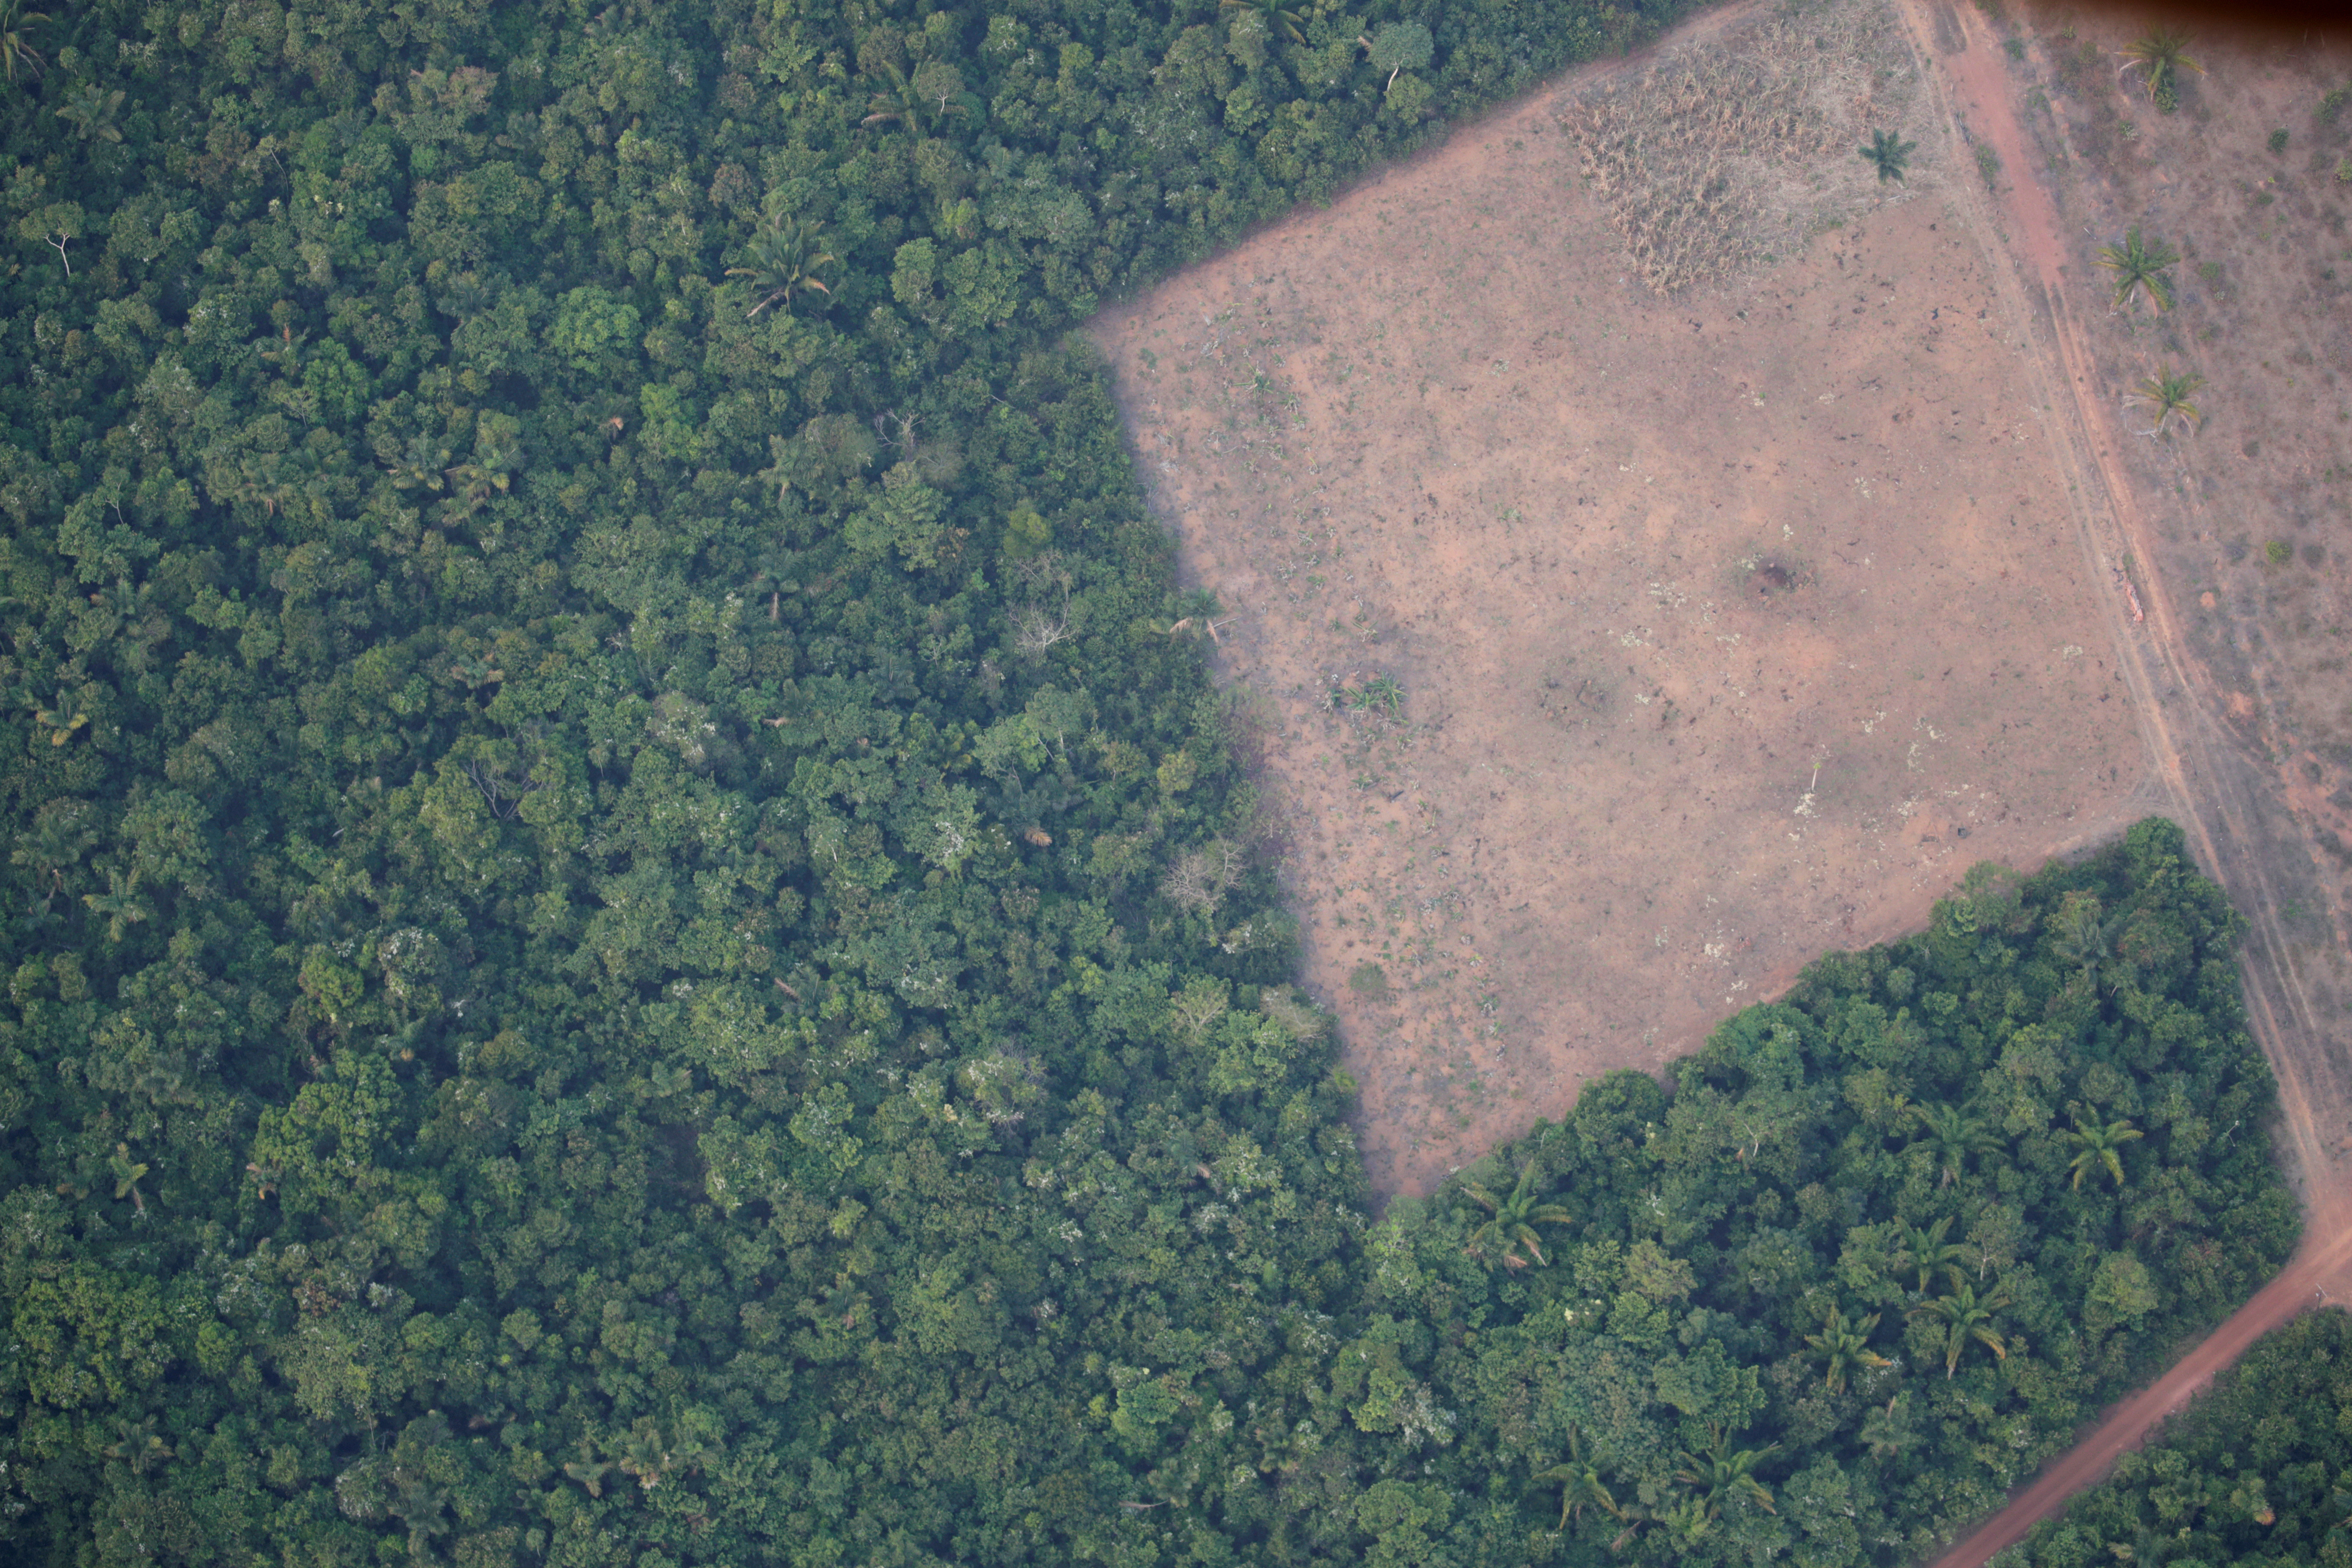 An aerial view shows a deforested plot of the Amazon near Porto Velho, Rondonia State, Brazil